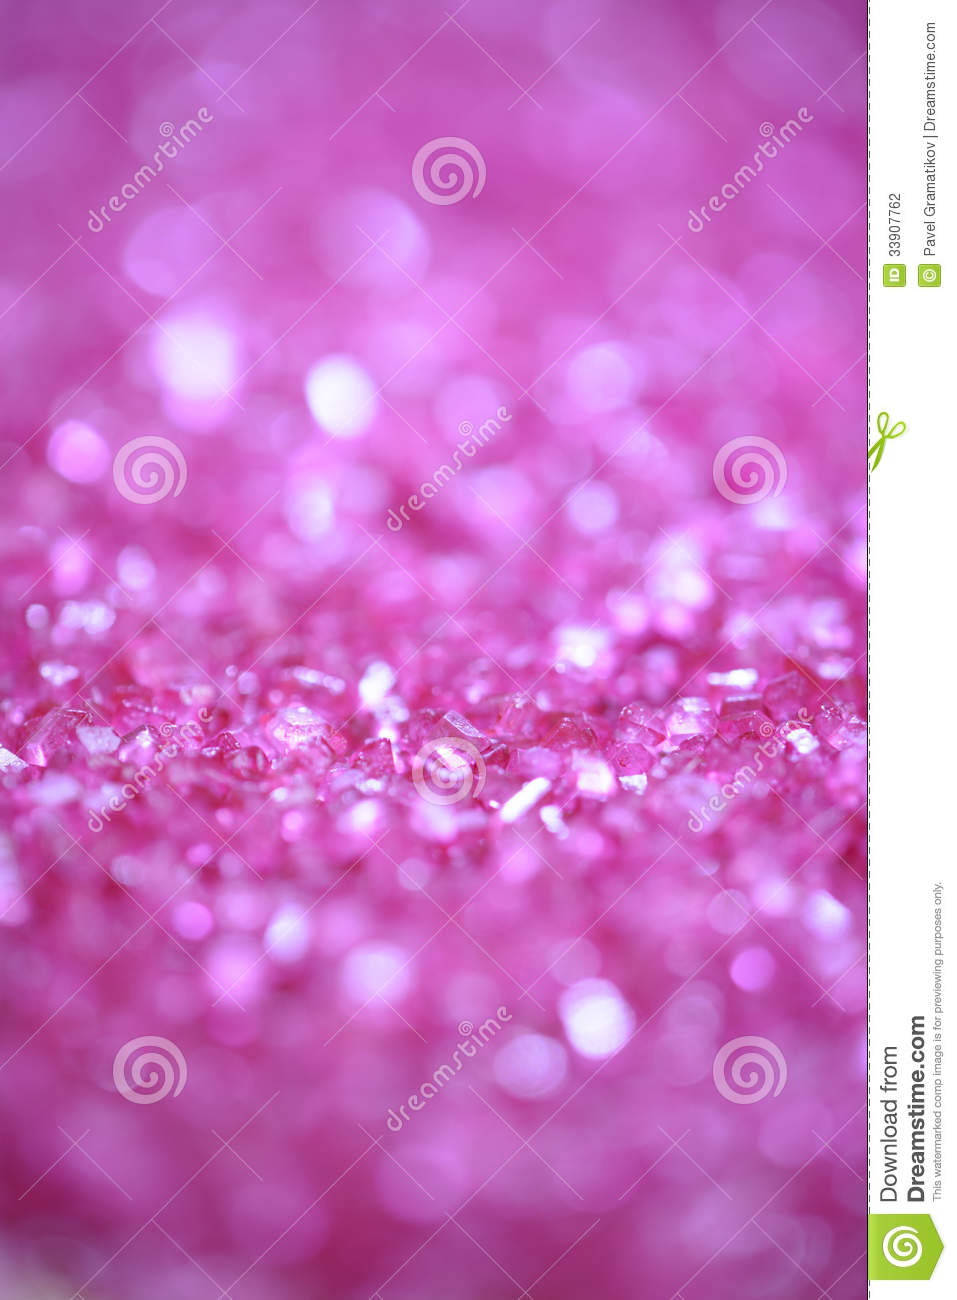 Glowing pink background